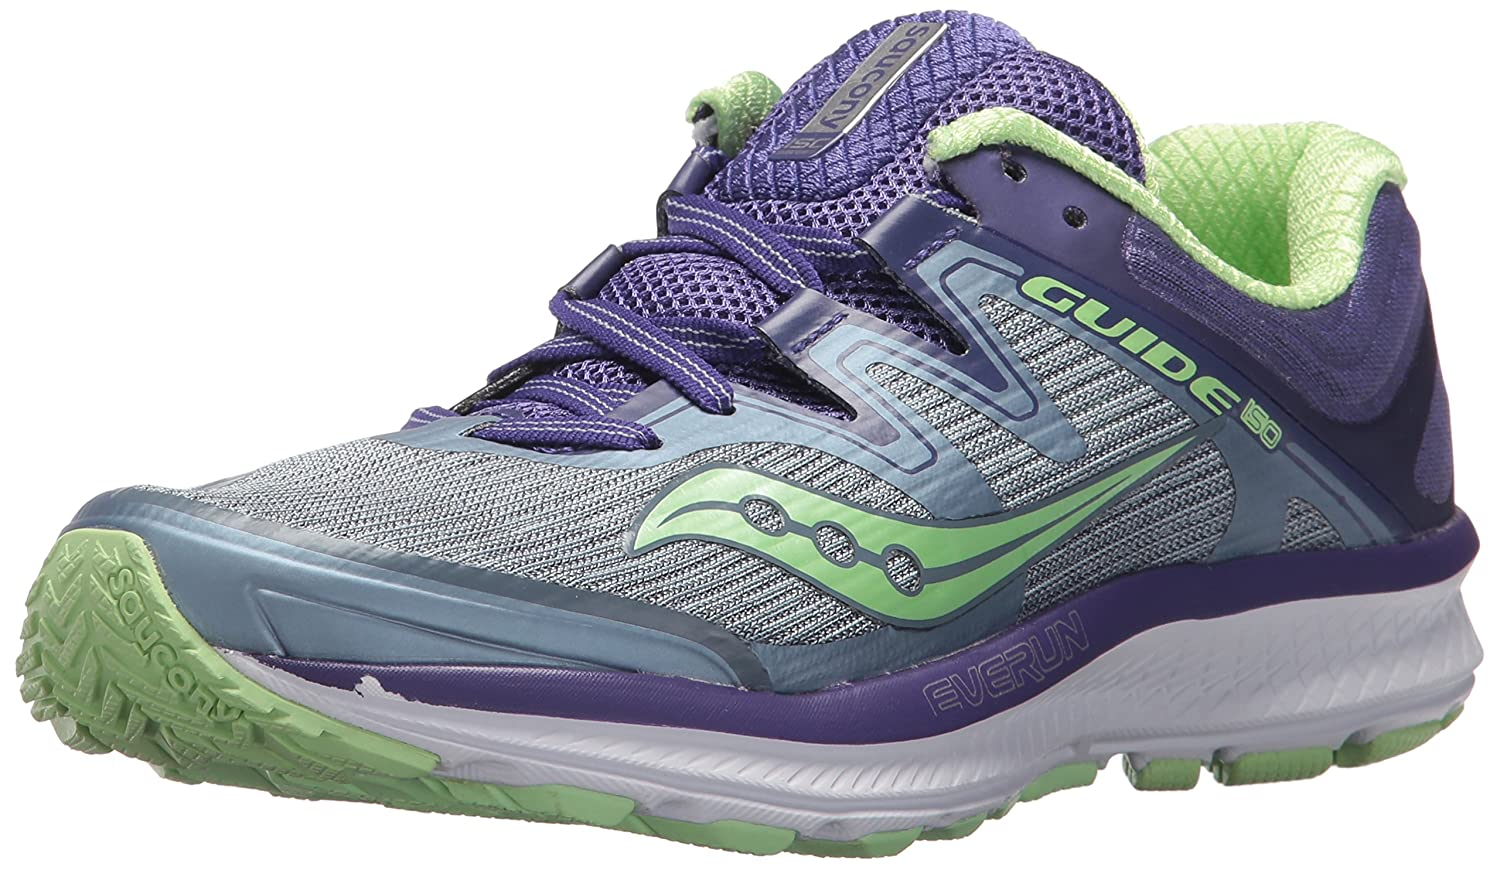 Saucony Women's Guide Iso Running Shoe B072QFFBP8 5.5 W US|Fog/Purple